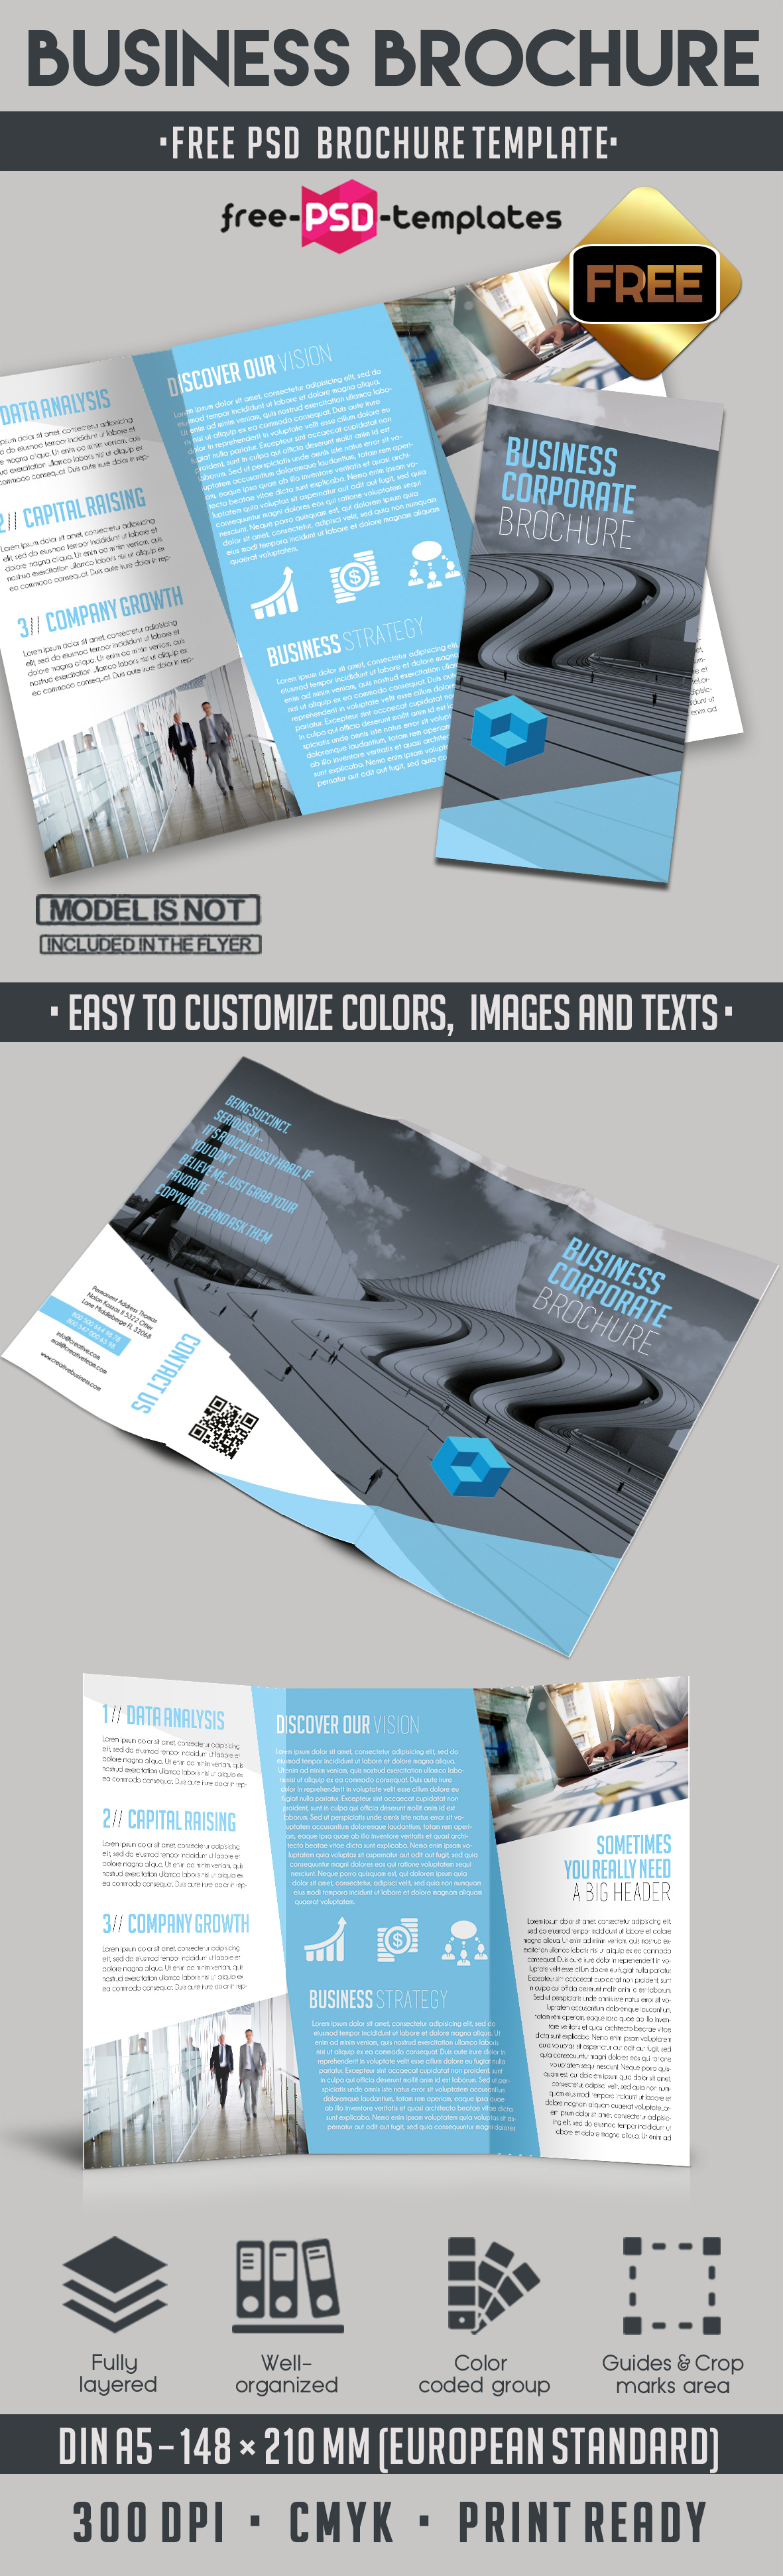 free corporate brochure templates - business free tri fold brochure template free psd templates